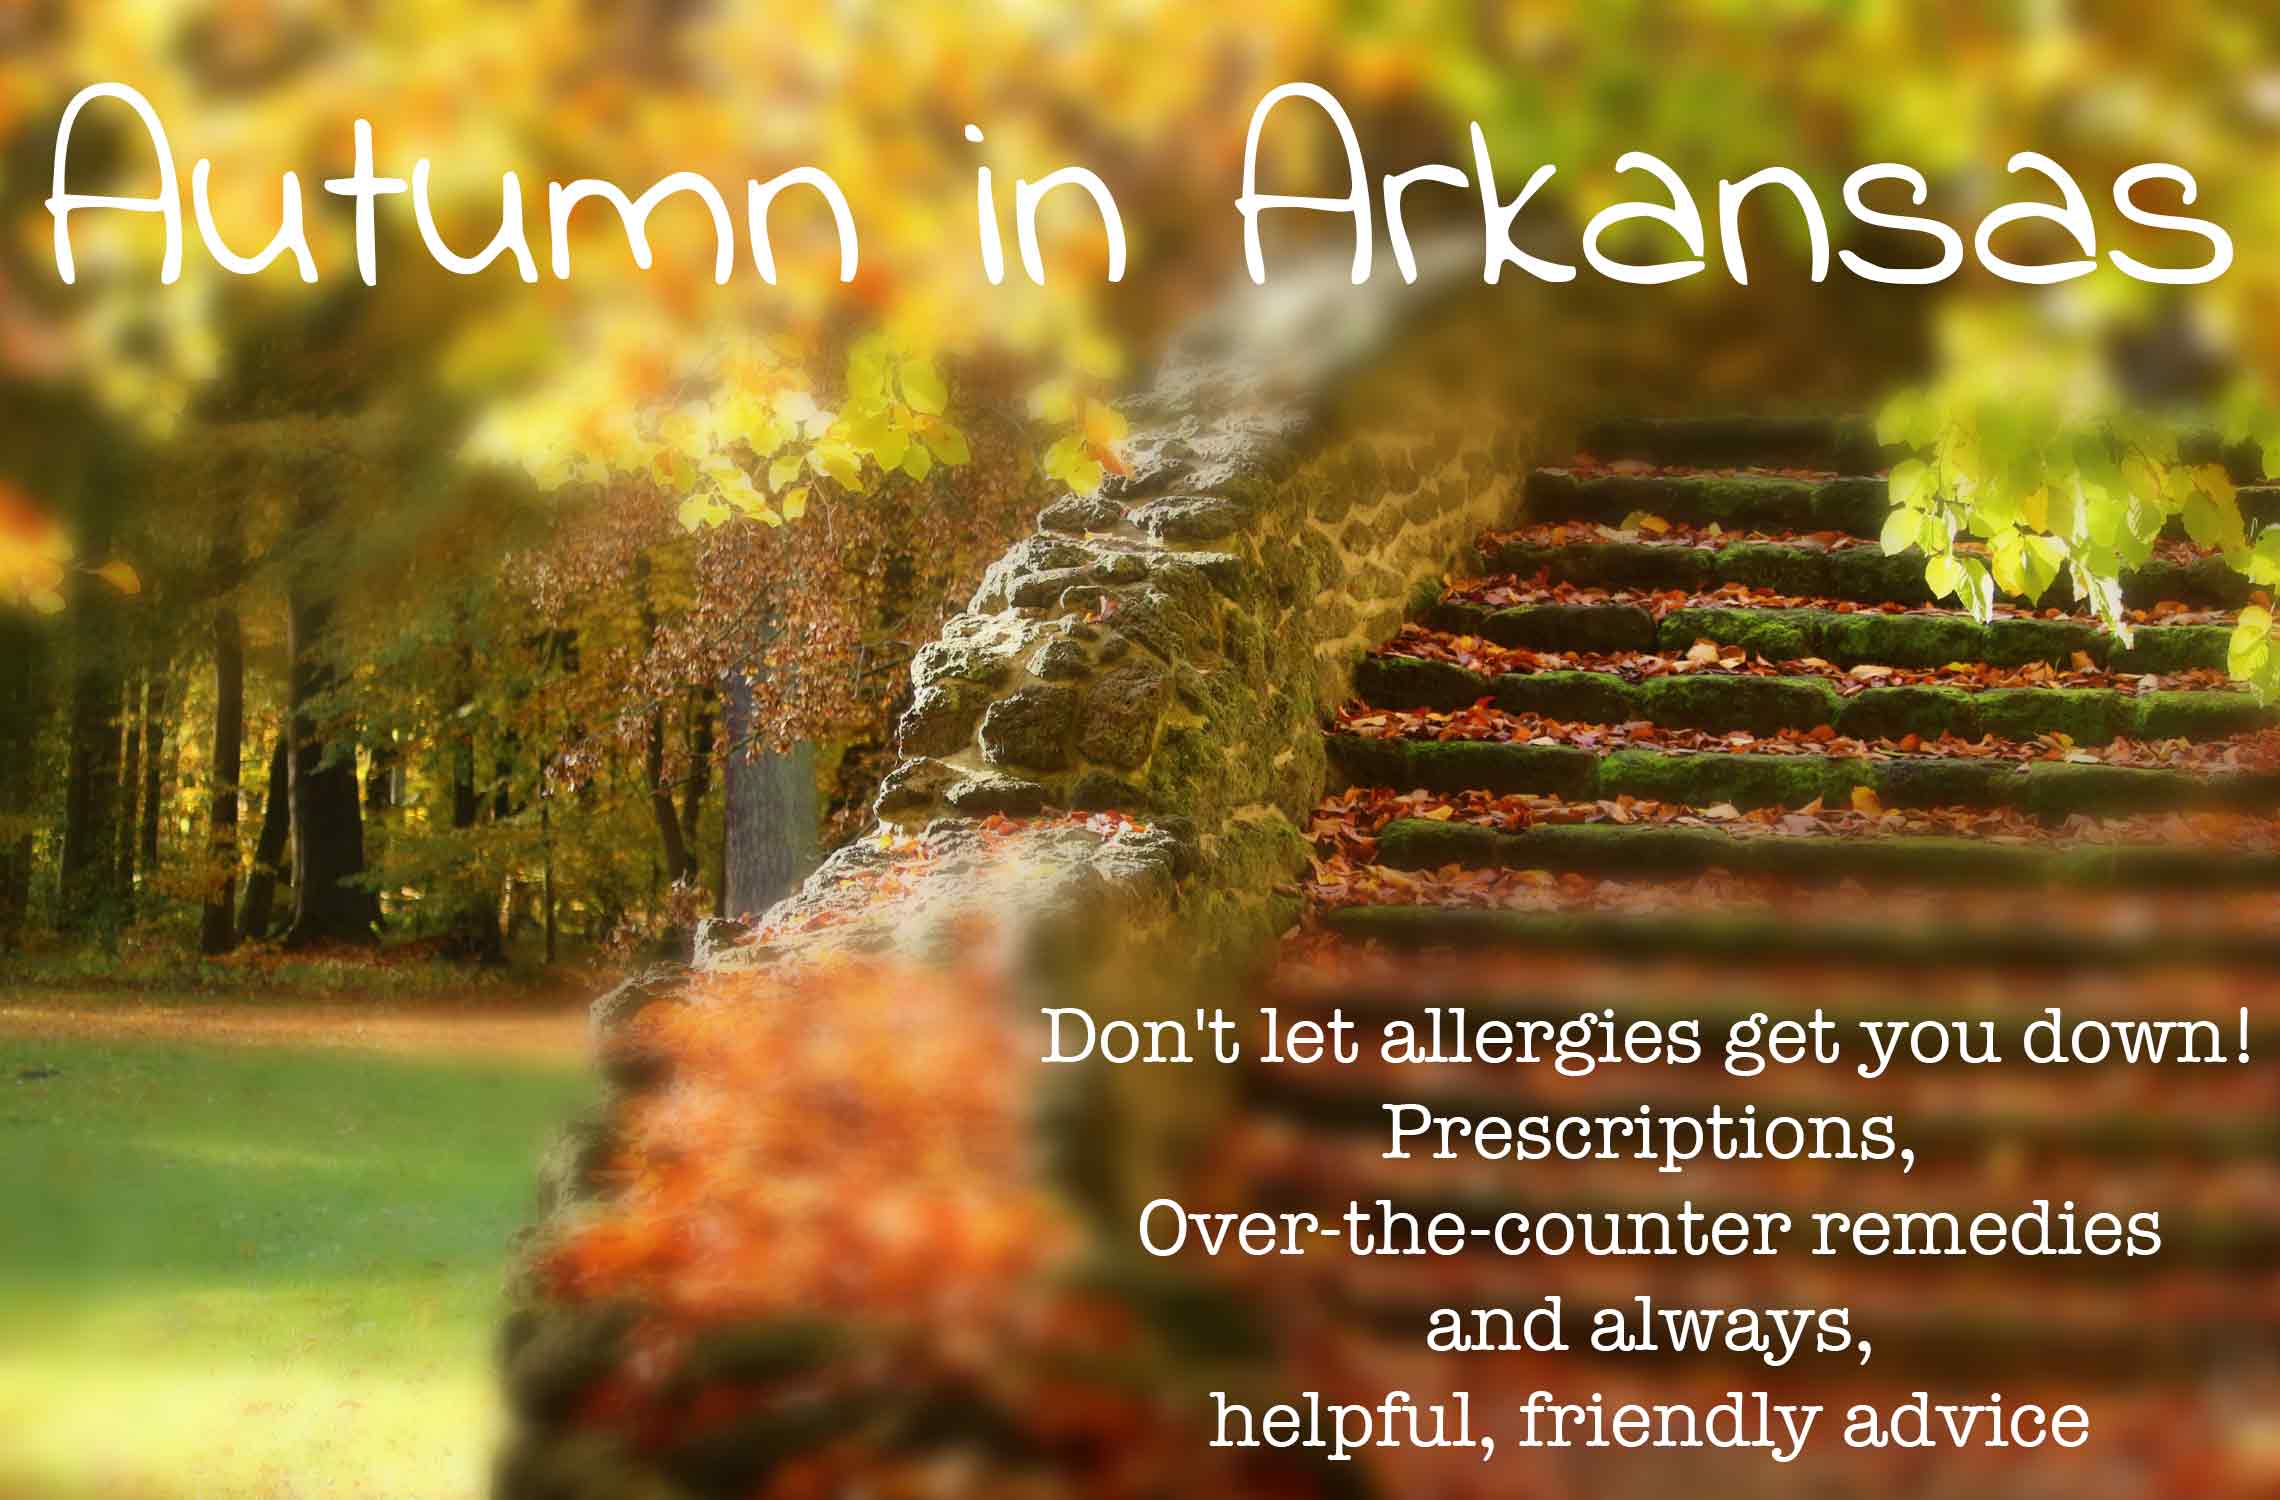 Autumn in Arkansas - don't let allergies get you down - prescriptions, over-the-counter remedies and always, helpful, friendly advice